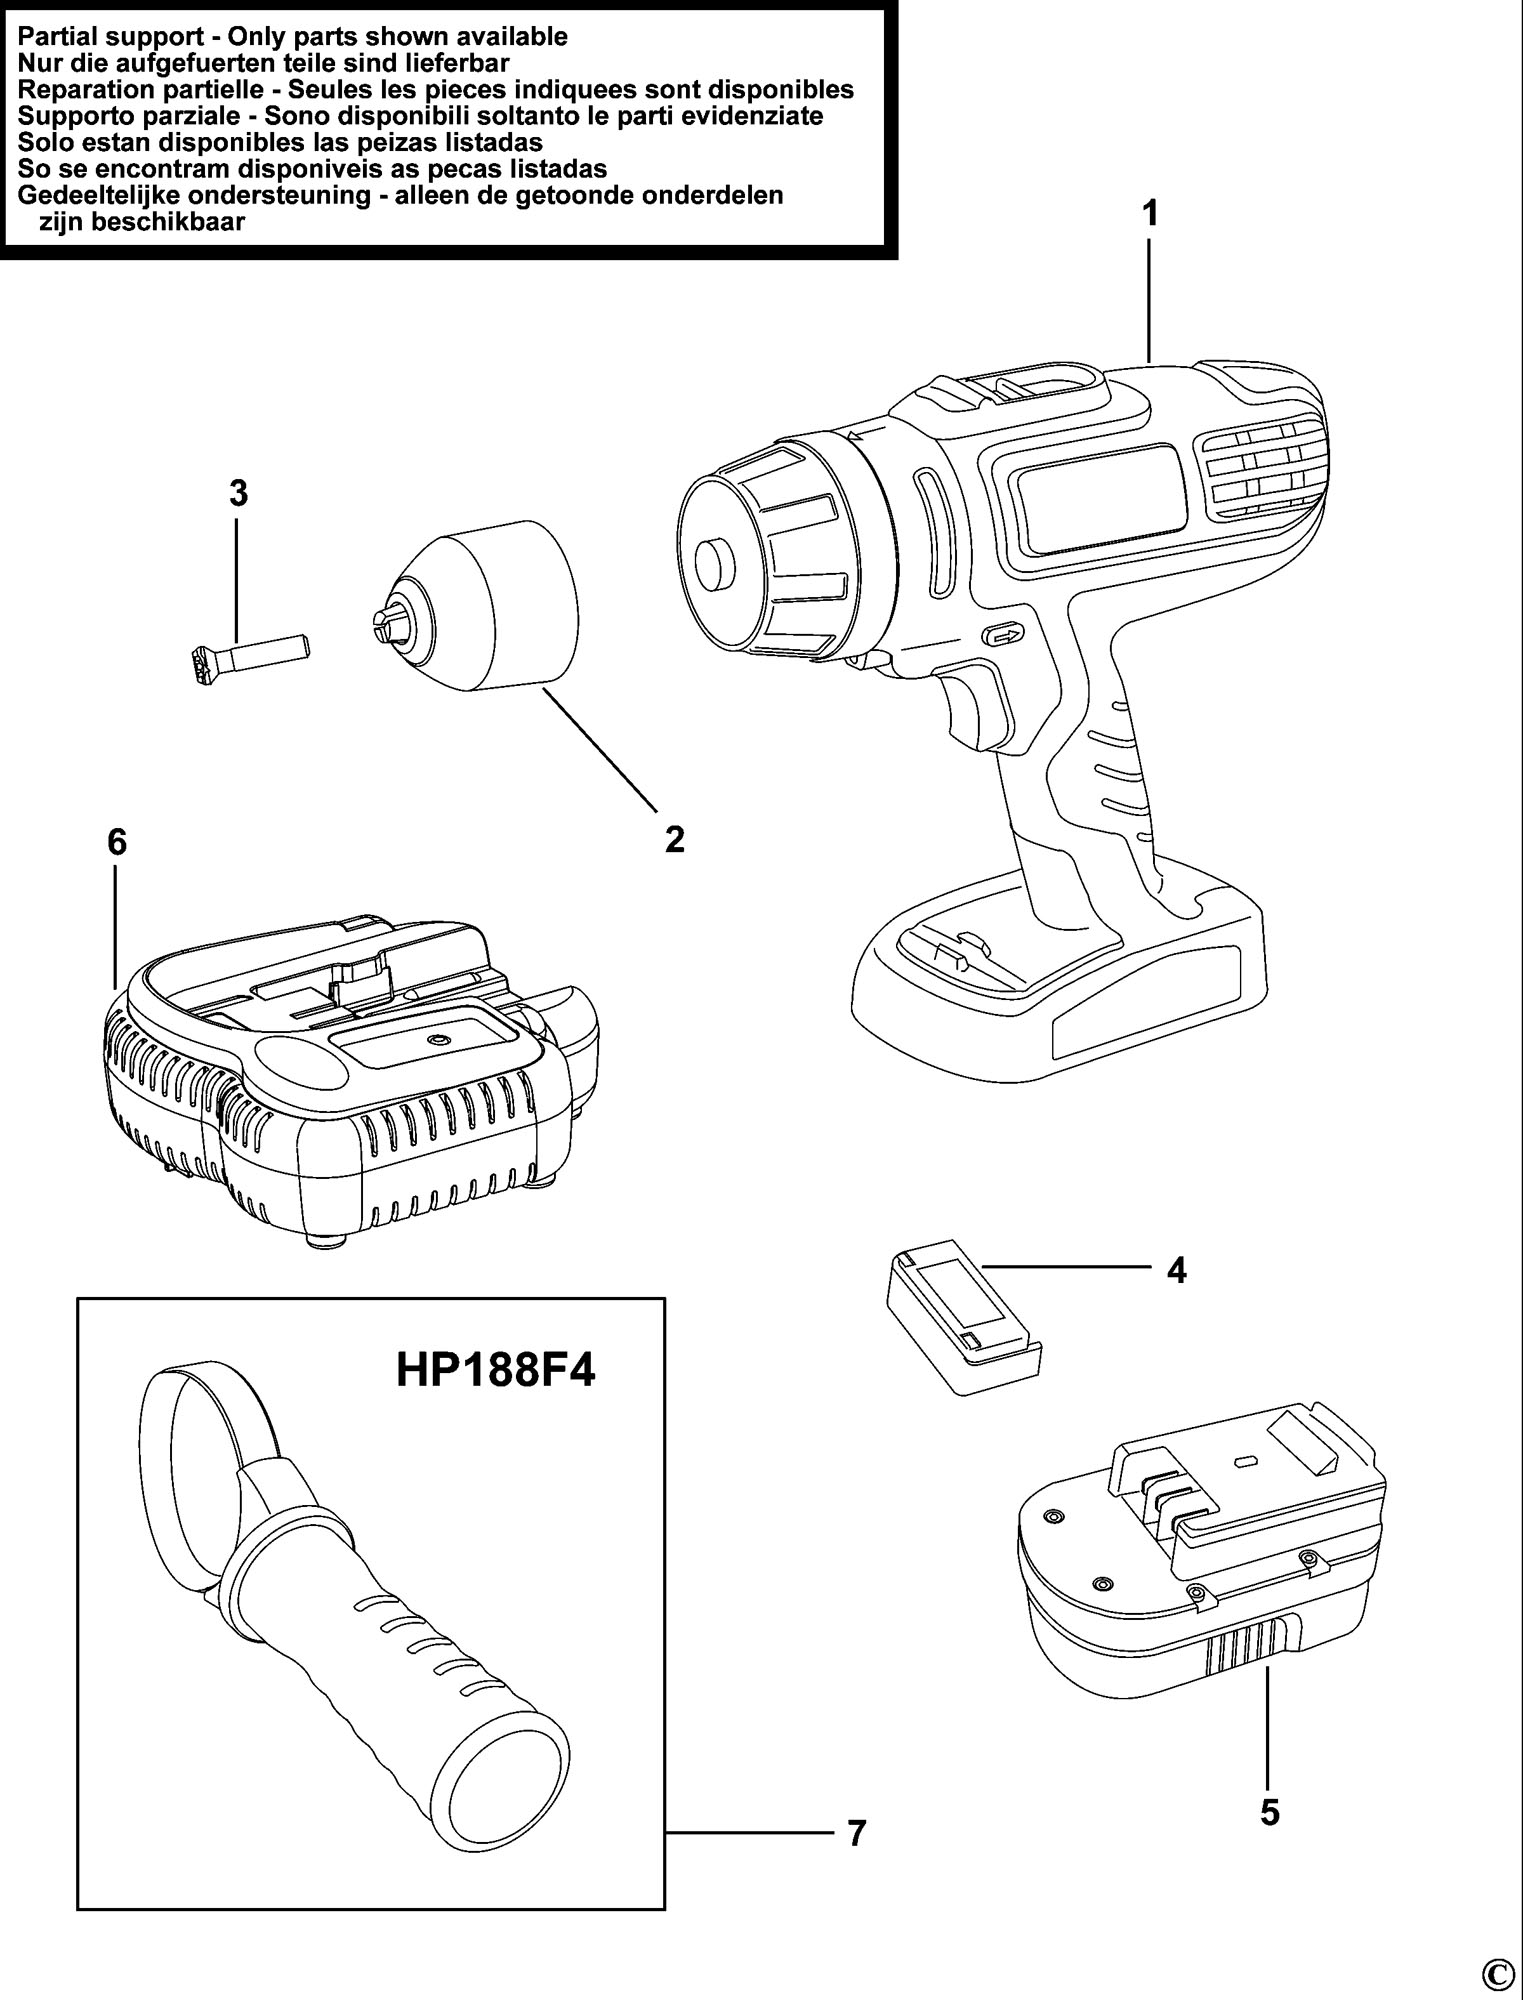 Spares for Black & Decker Hp186f4bk Cordless Drill (type